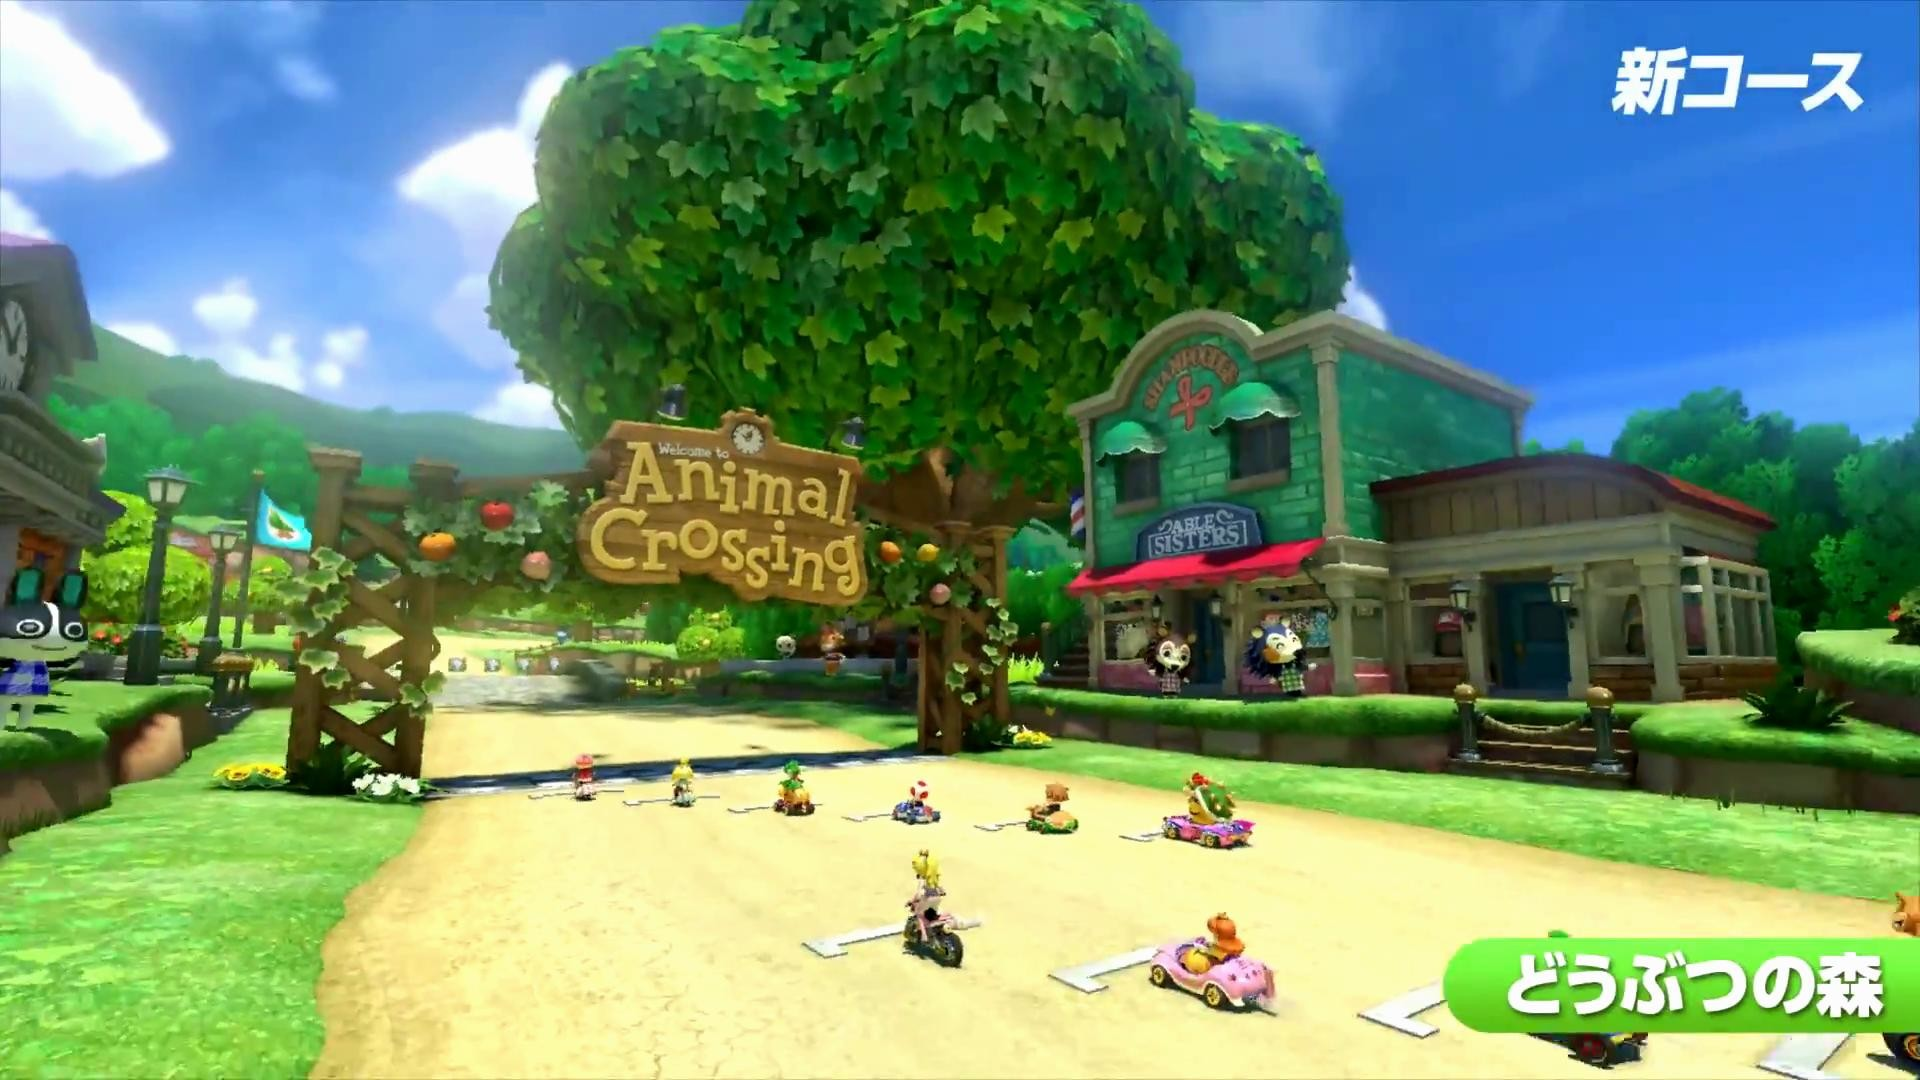 Animal Crossing HD Wallpaper (82+ Images